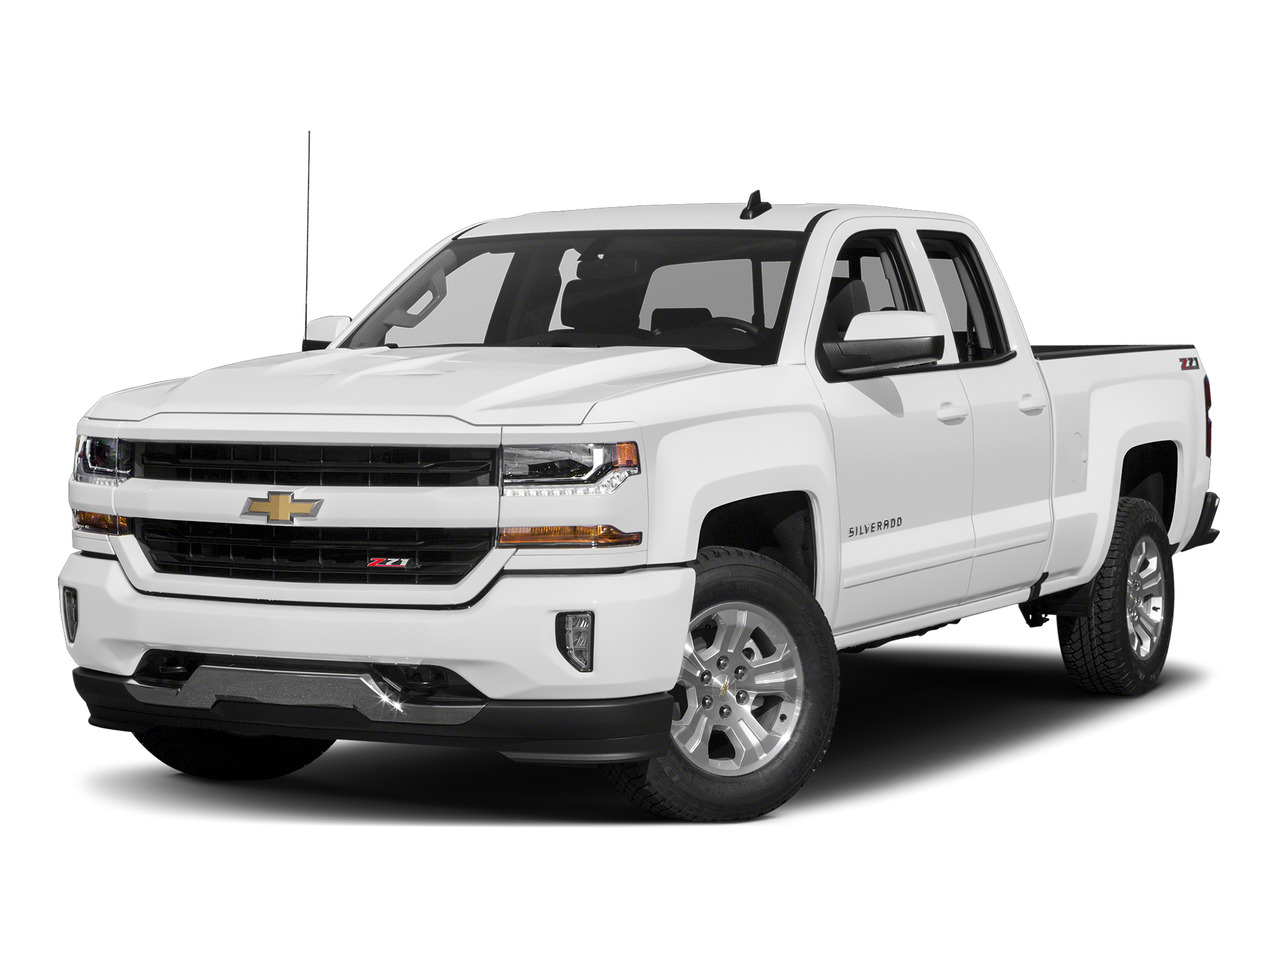 "2016 Chevrolet Silverado 1500 4WD DOUBLE CAB 143.5"" LT W/1LT Extended Cab Pickup Slide"